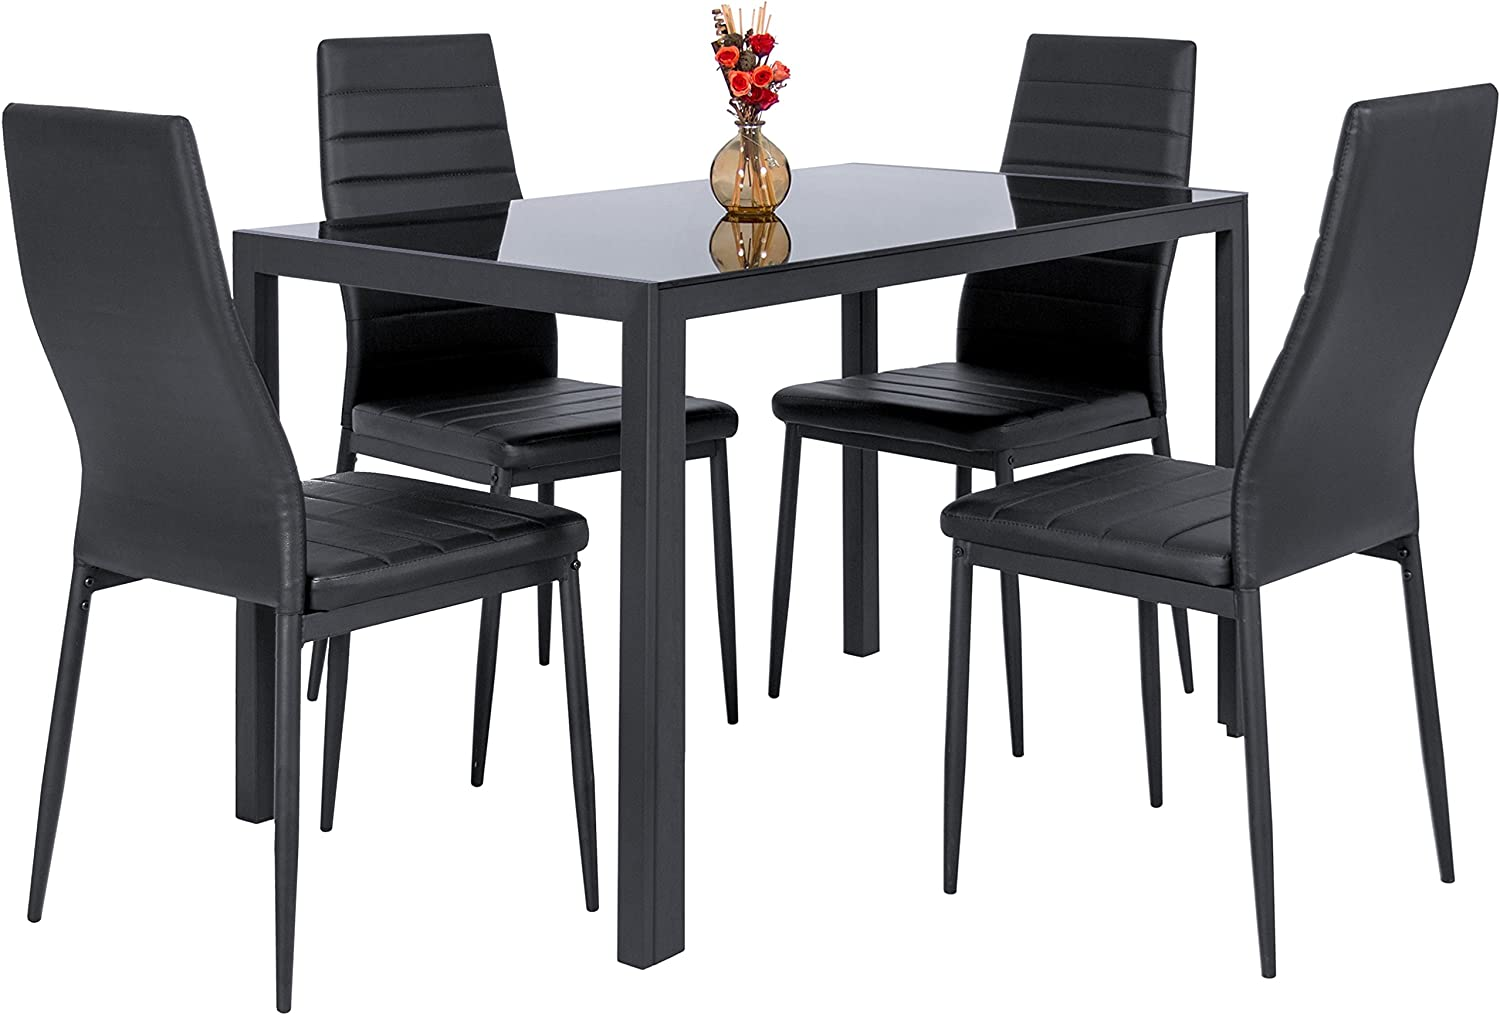 Best Choice Products 5 Piece Kitchen Dining Table Set W Glass Top and 4 Leather Chairs Dinette- Black